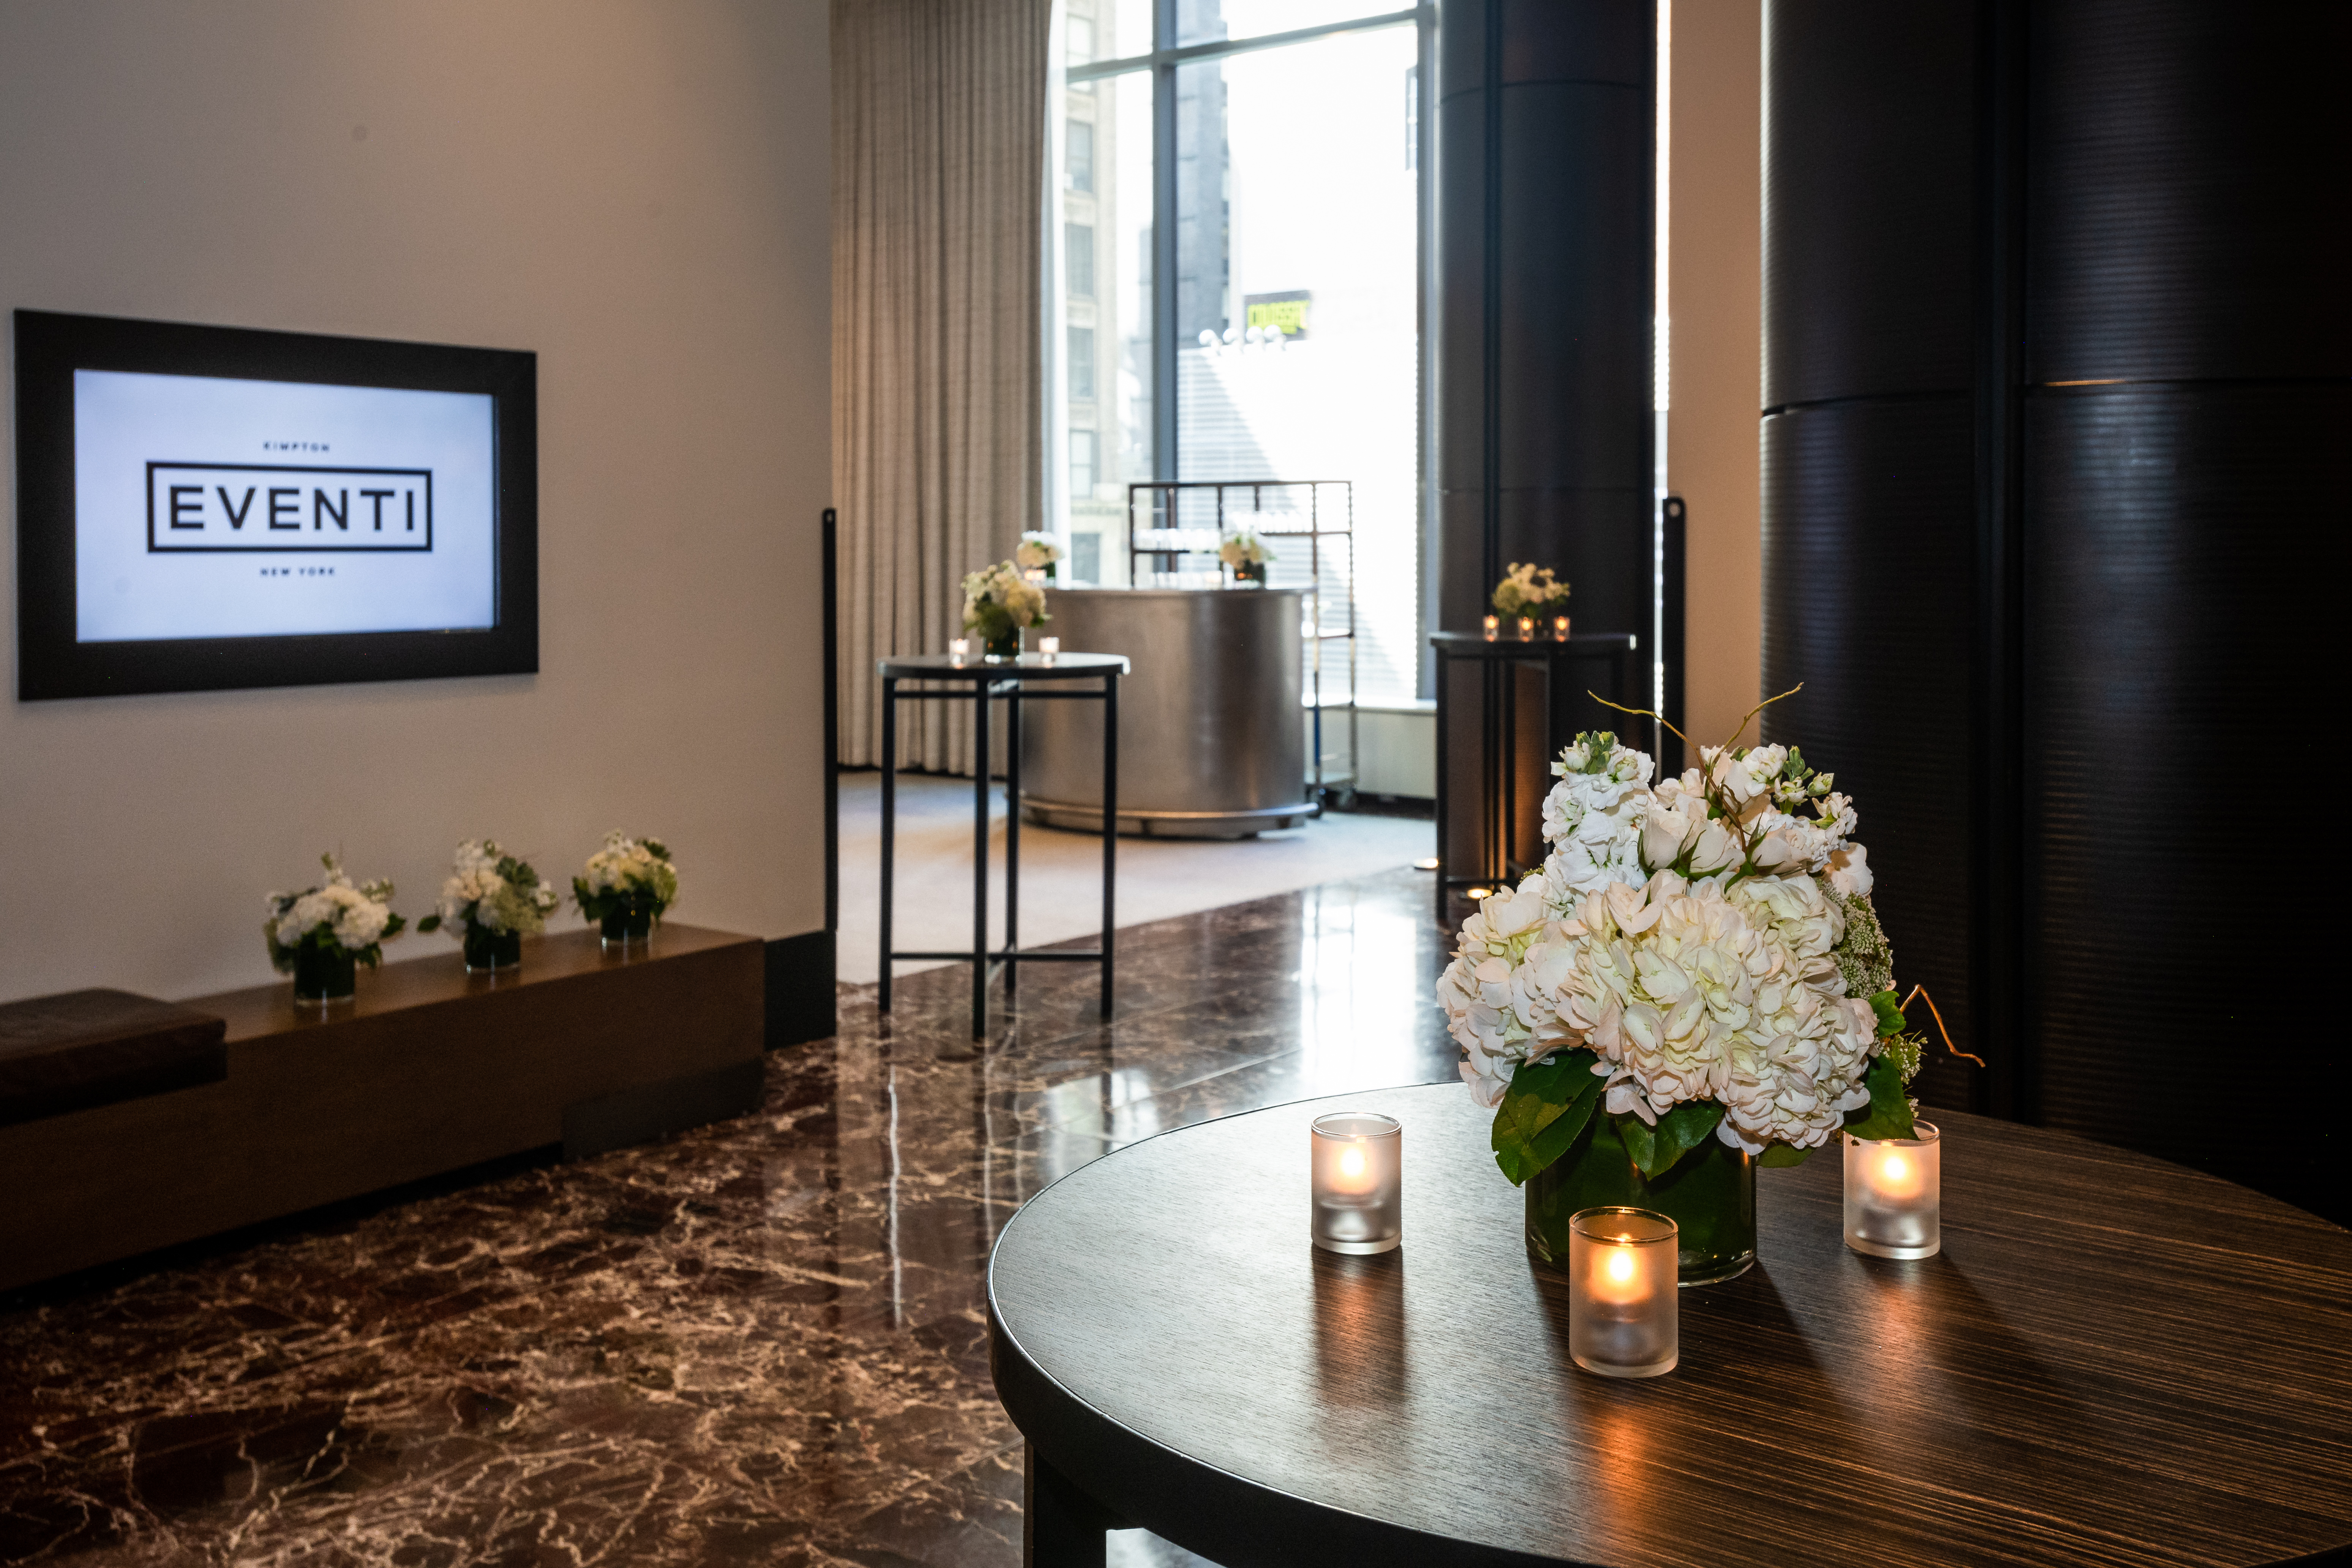 The hotel's event spaces cover a total of 20,458 square feet.